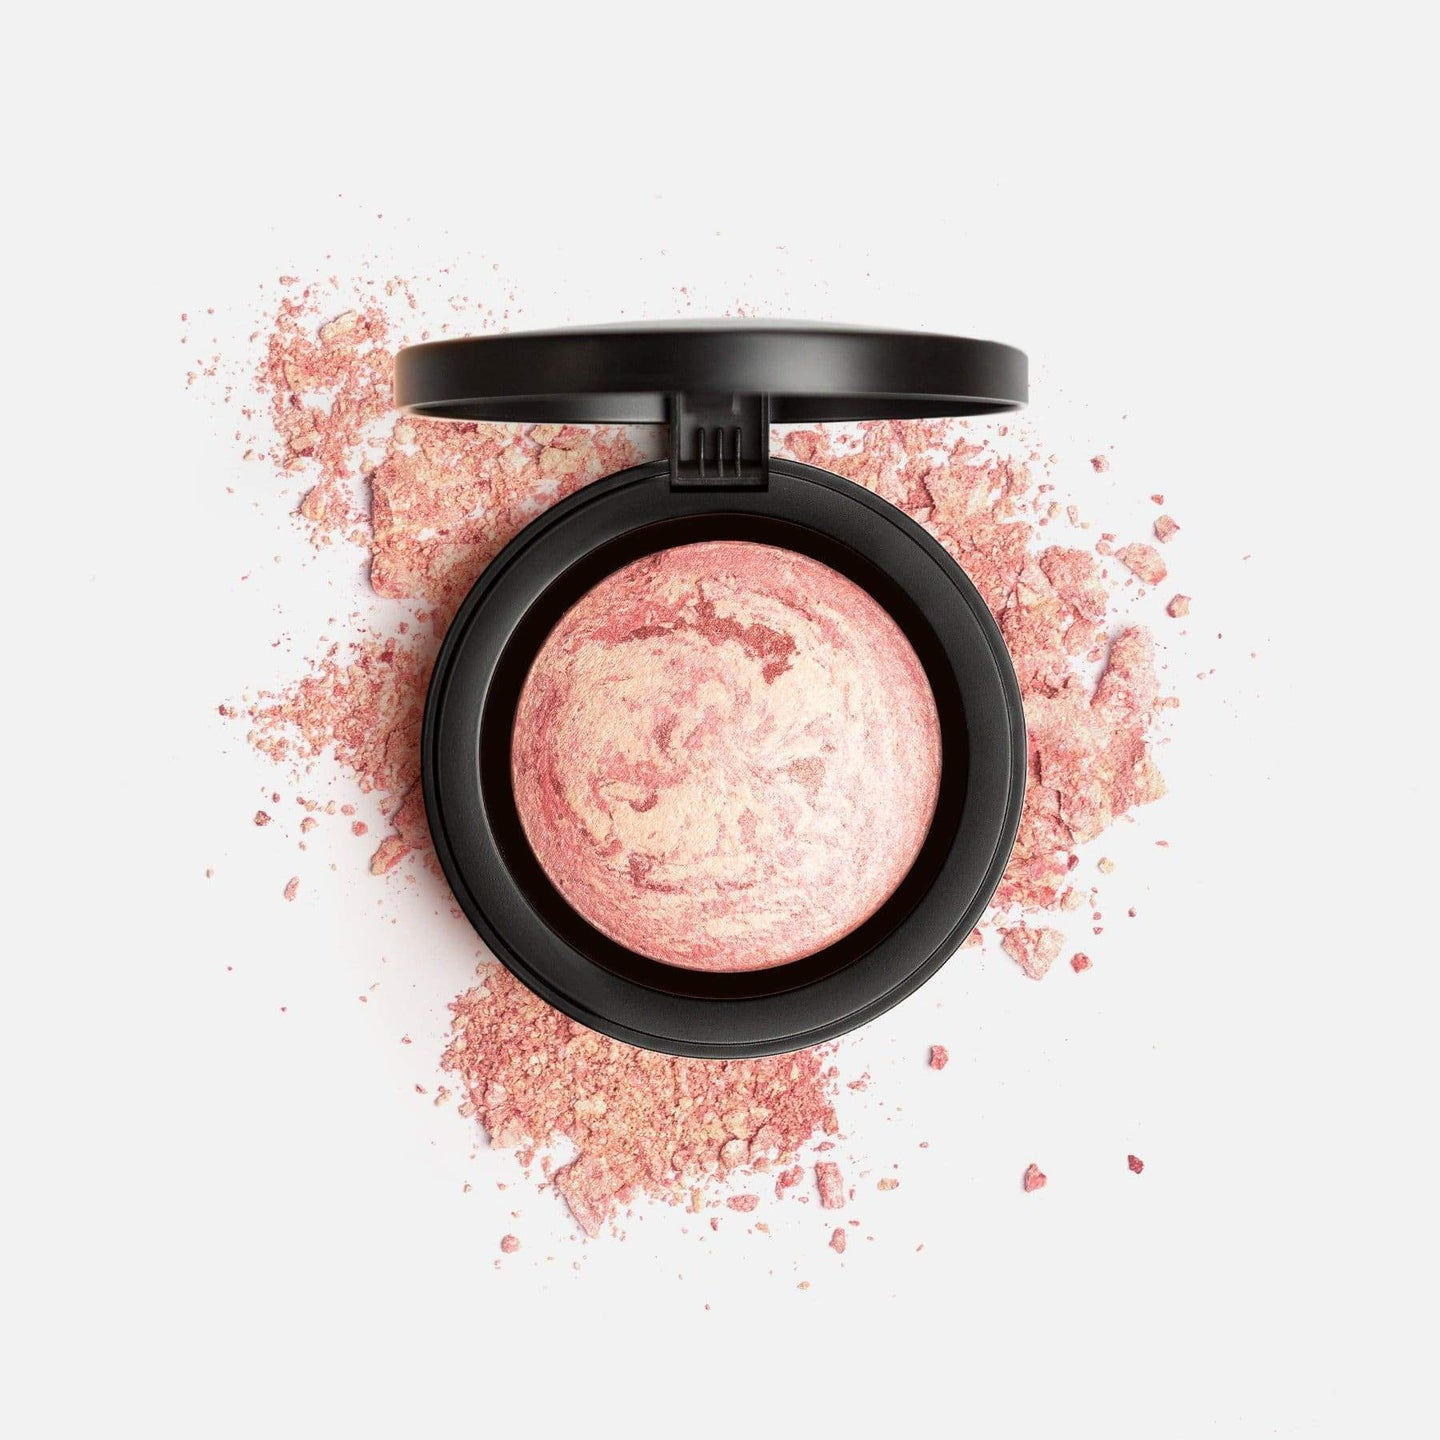 Shop Paros Pink Marble Mineral Baked Powder Blush by Mirenesse - Let's make it a trend #explorebeautiful face blushes